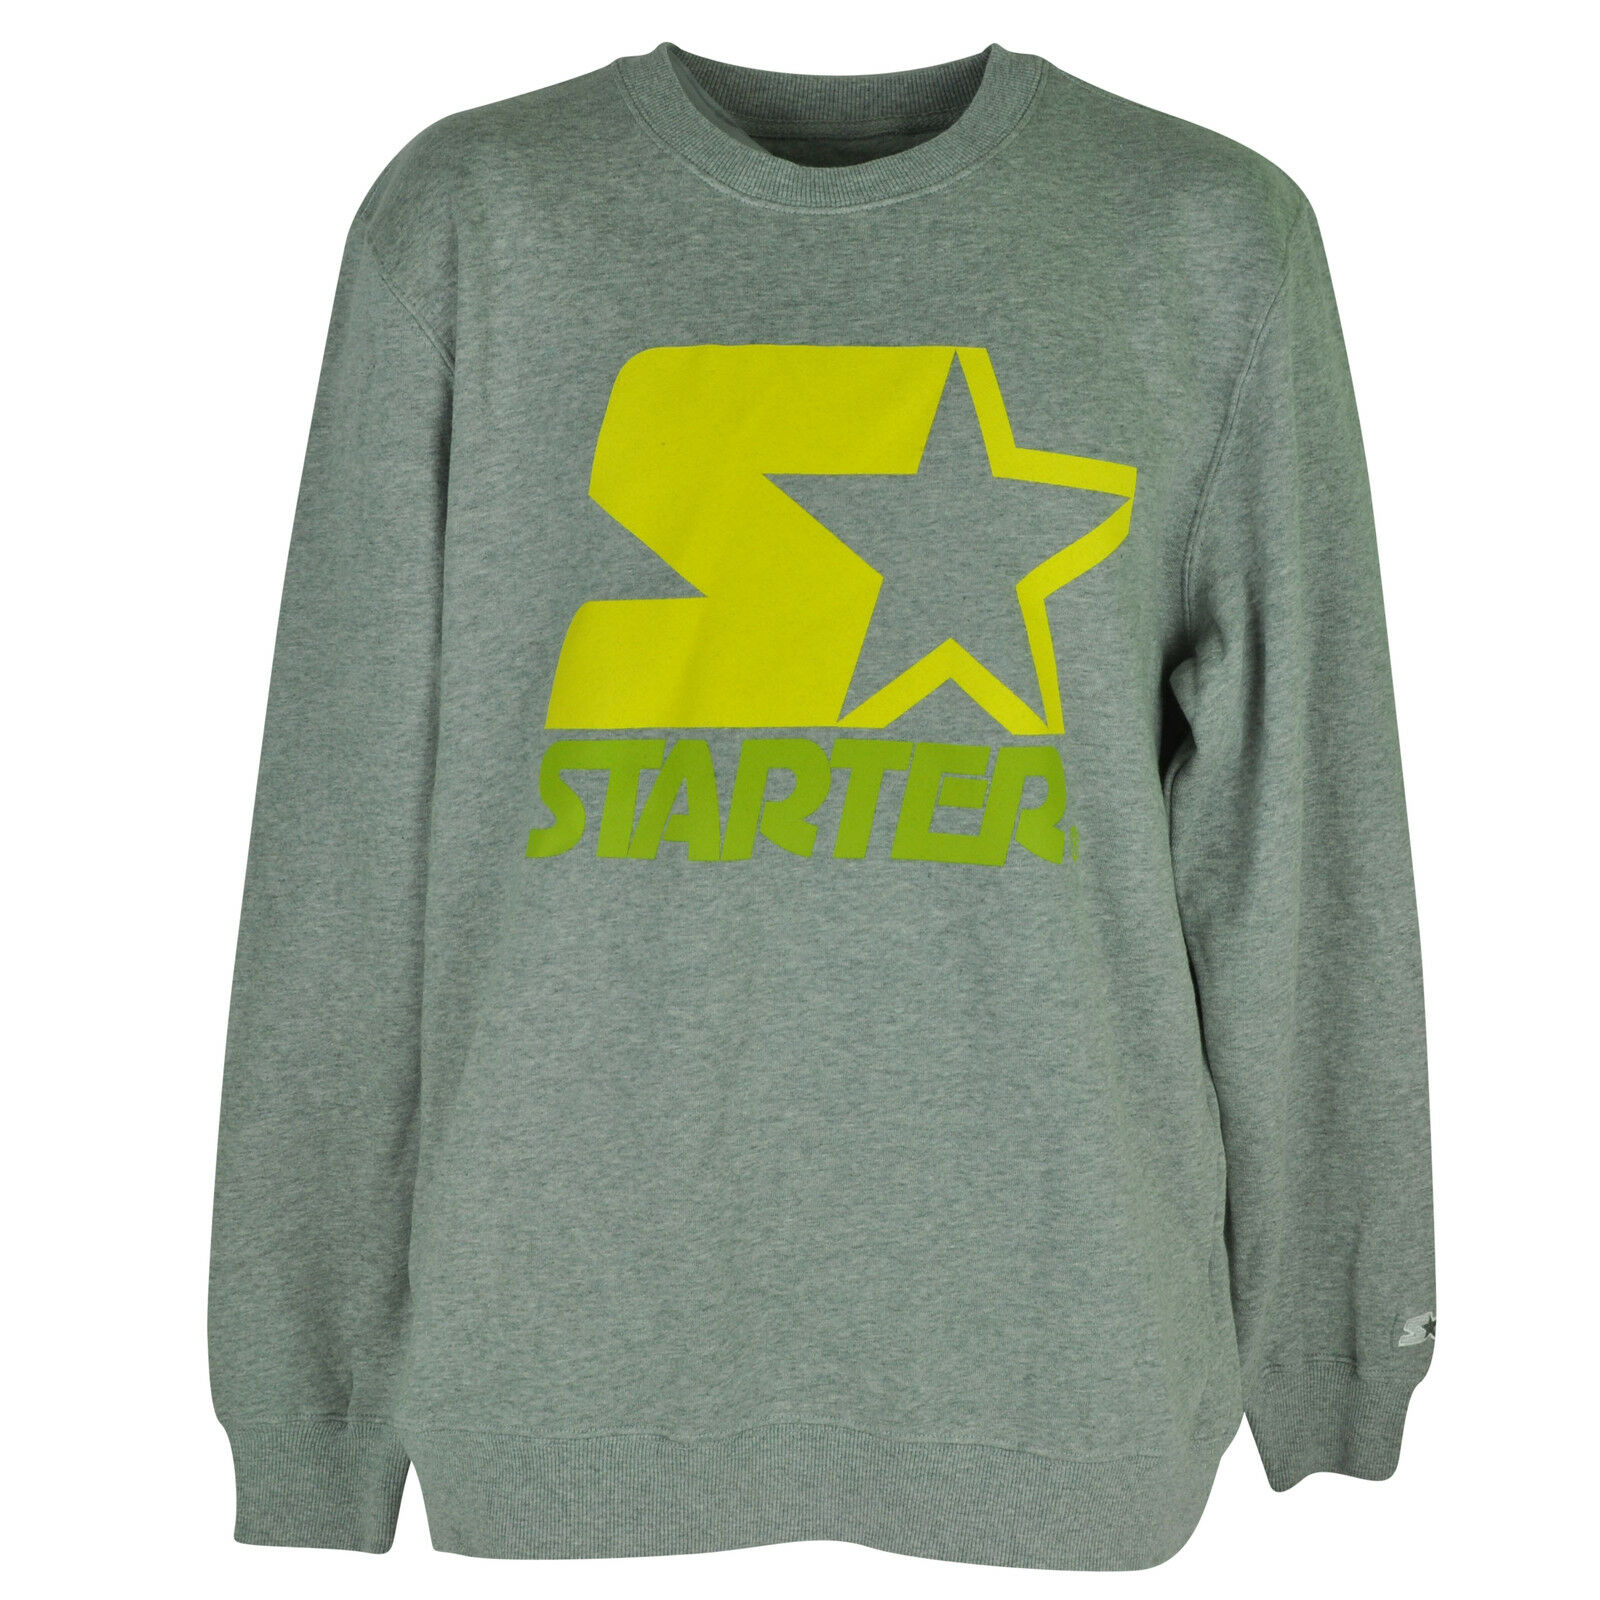 Starter Wordmark Pullover Sweater Mens Adult Crew Neck Fleece Gray ...